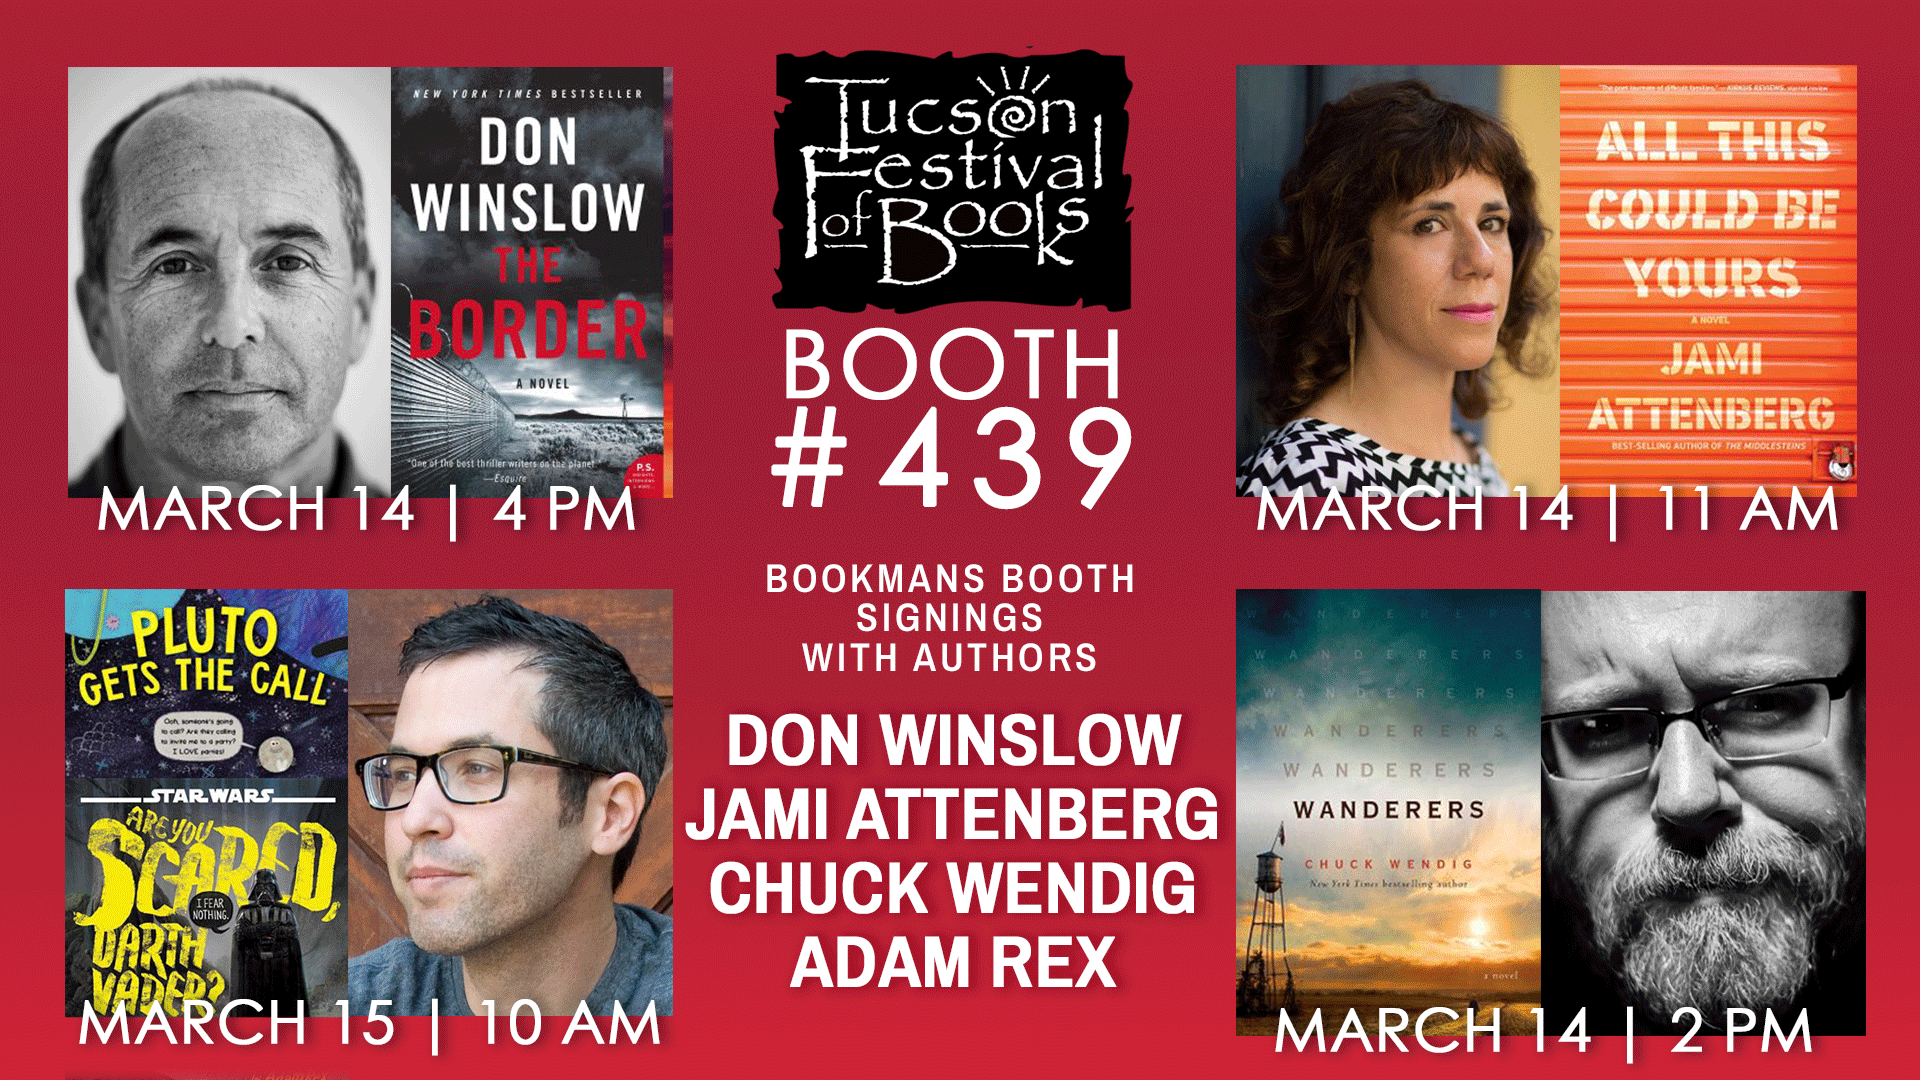 tucson festival of books bookmans booth 439 with book signings by don winslow jami attenberg chuck wendig adam rex